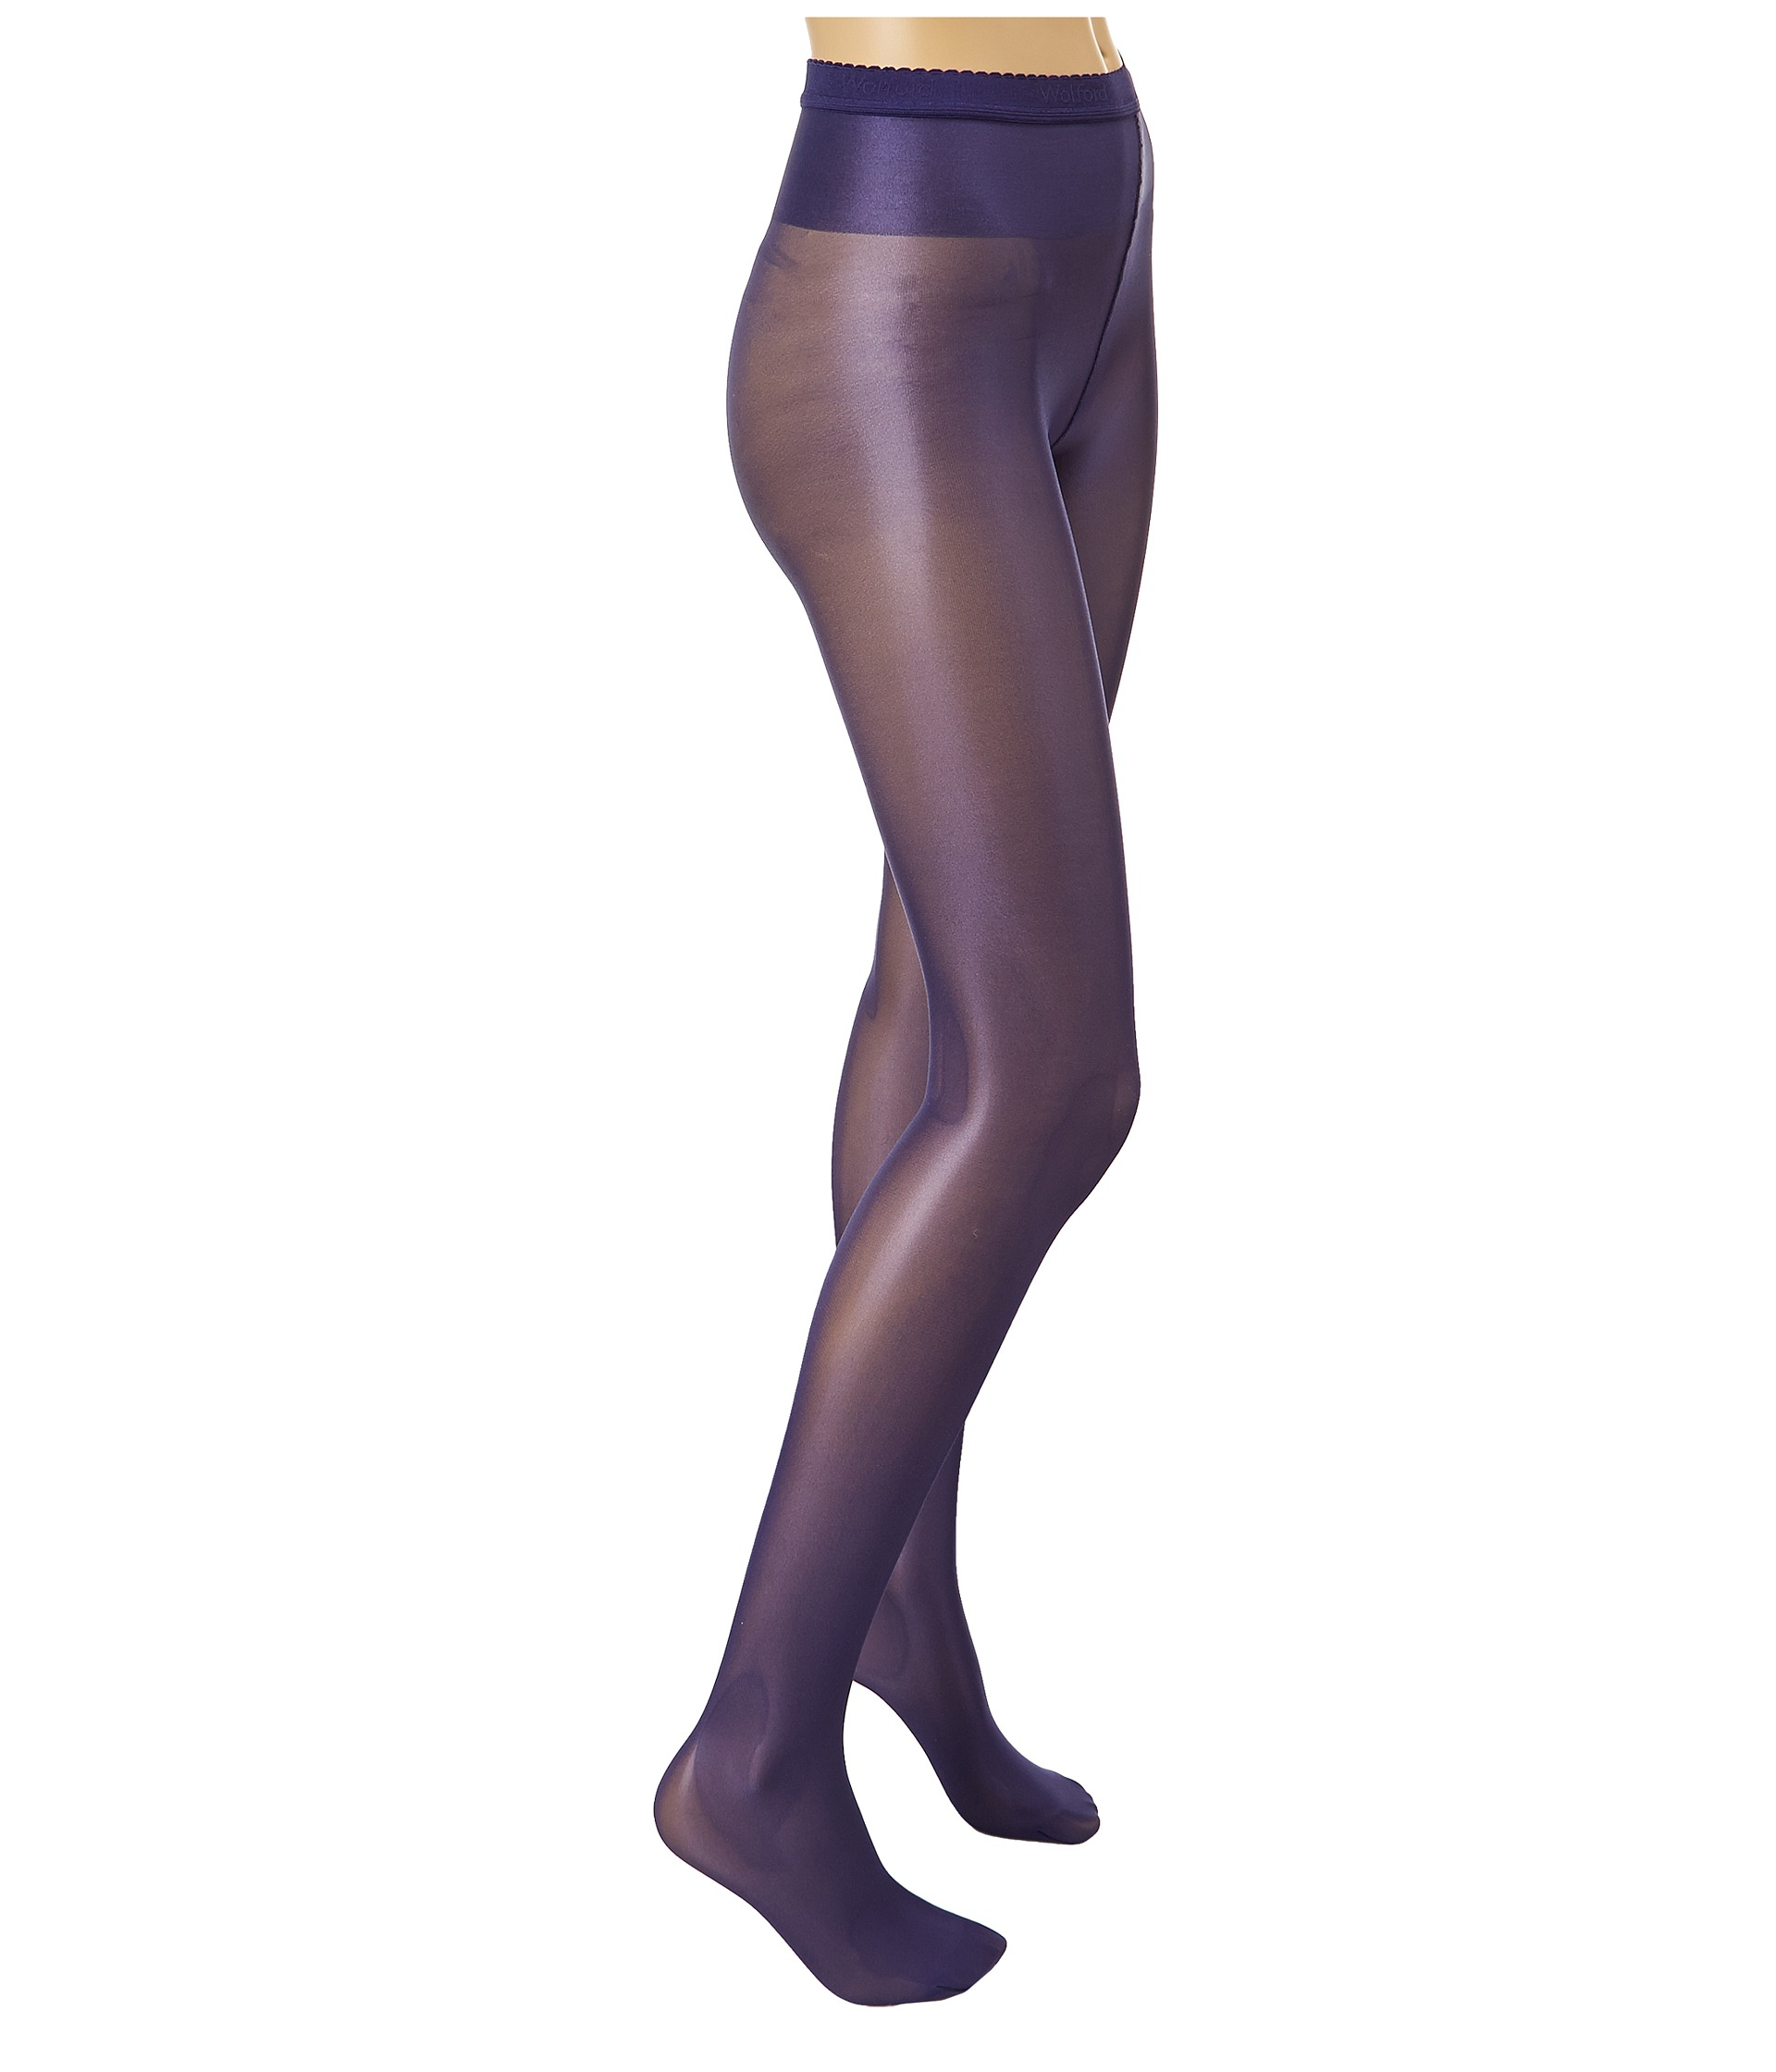 Wolford Neon 40 Tights Zapposcom Free Shipping BOTH Ways